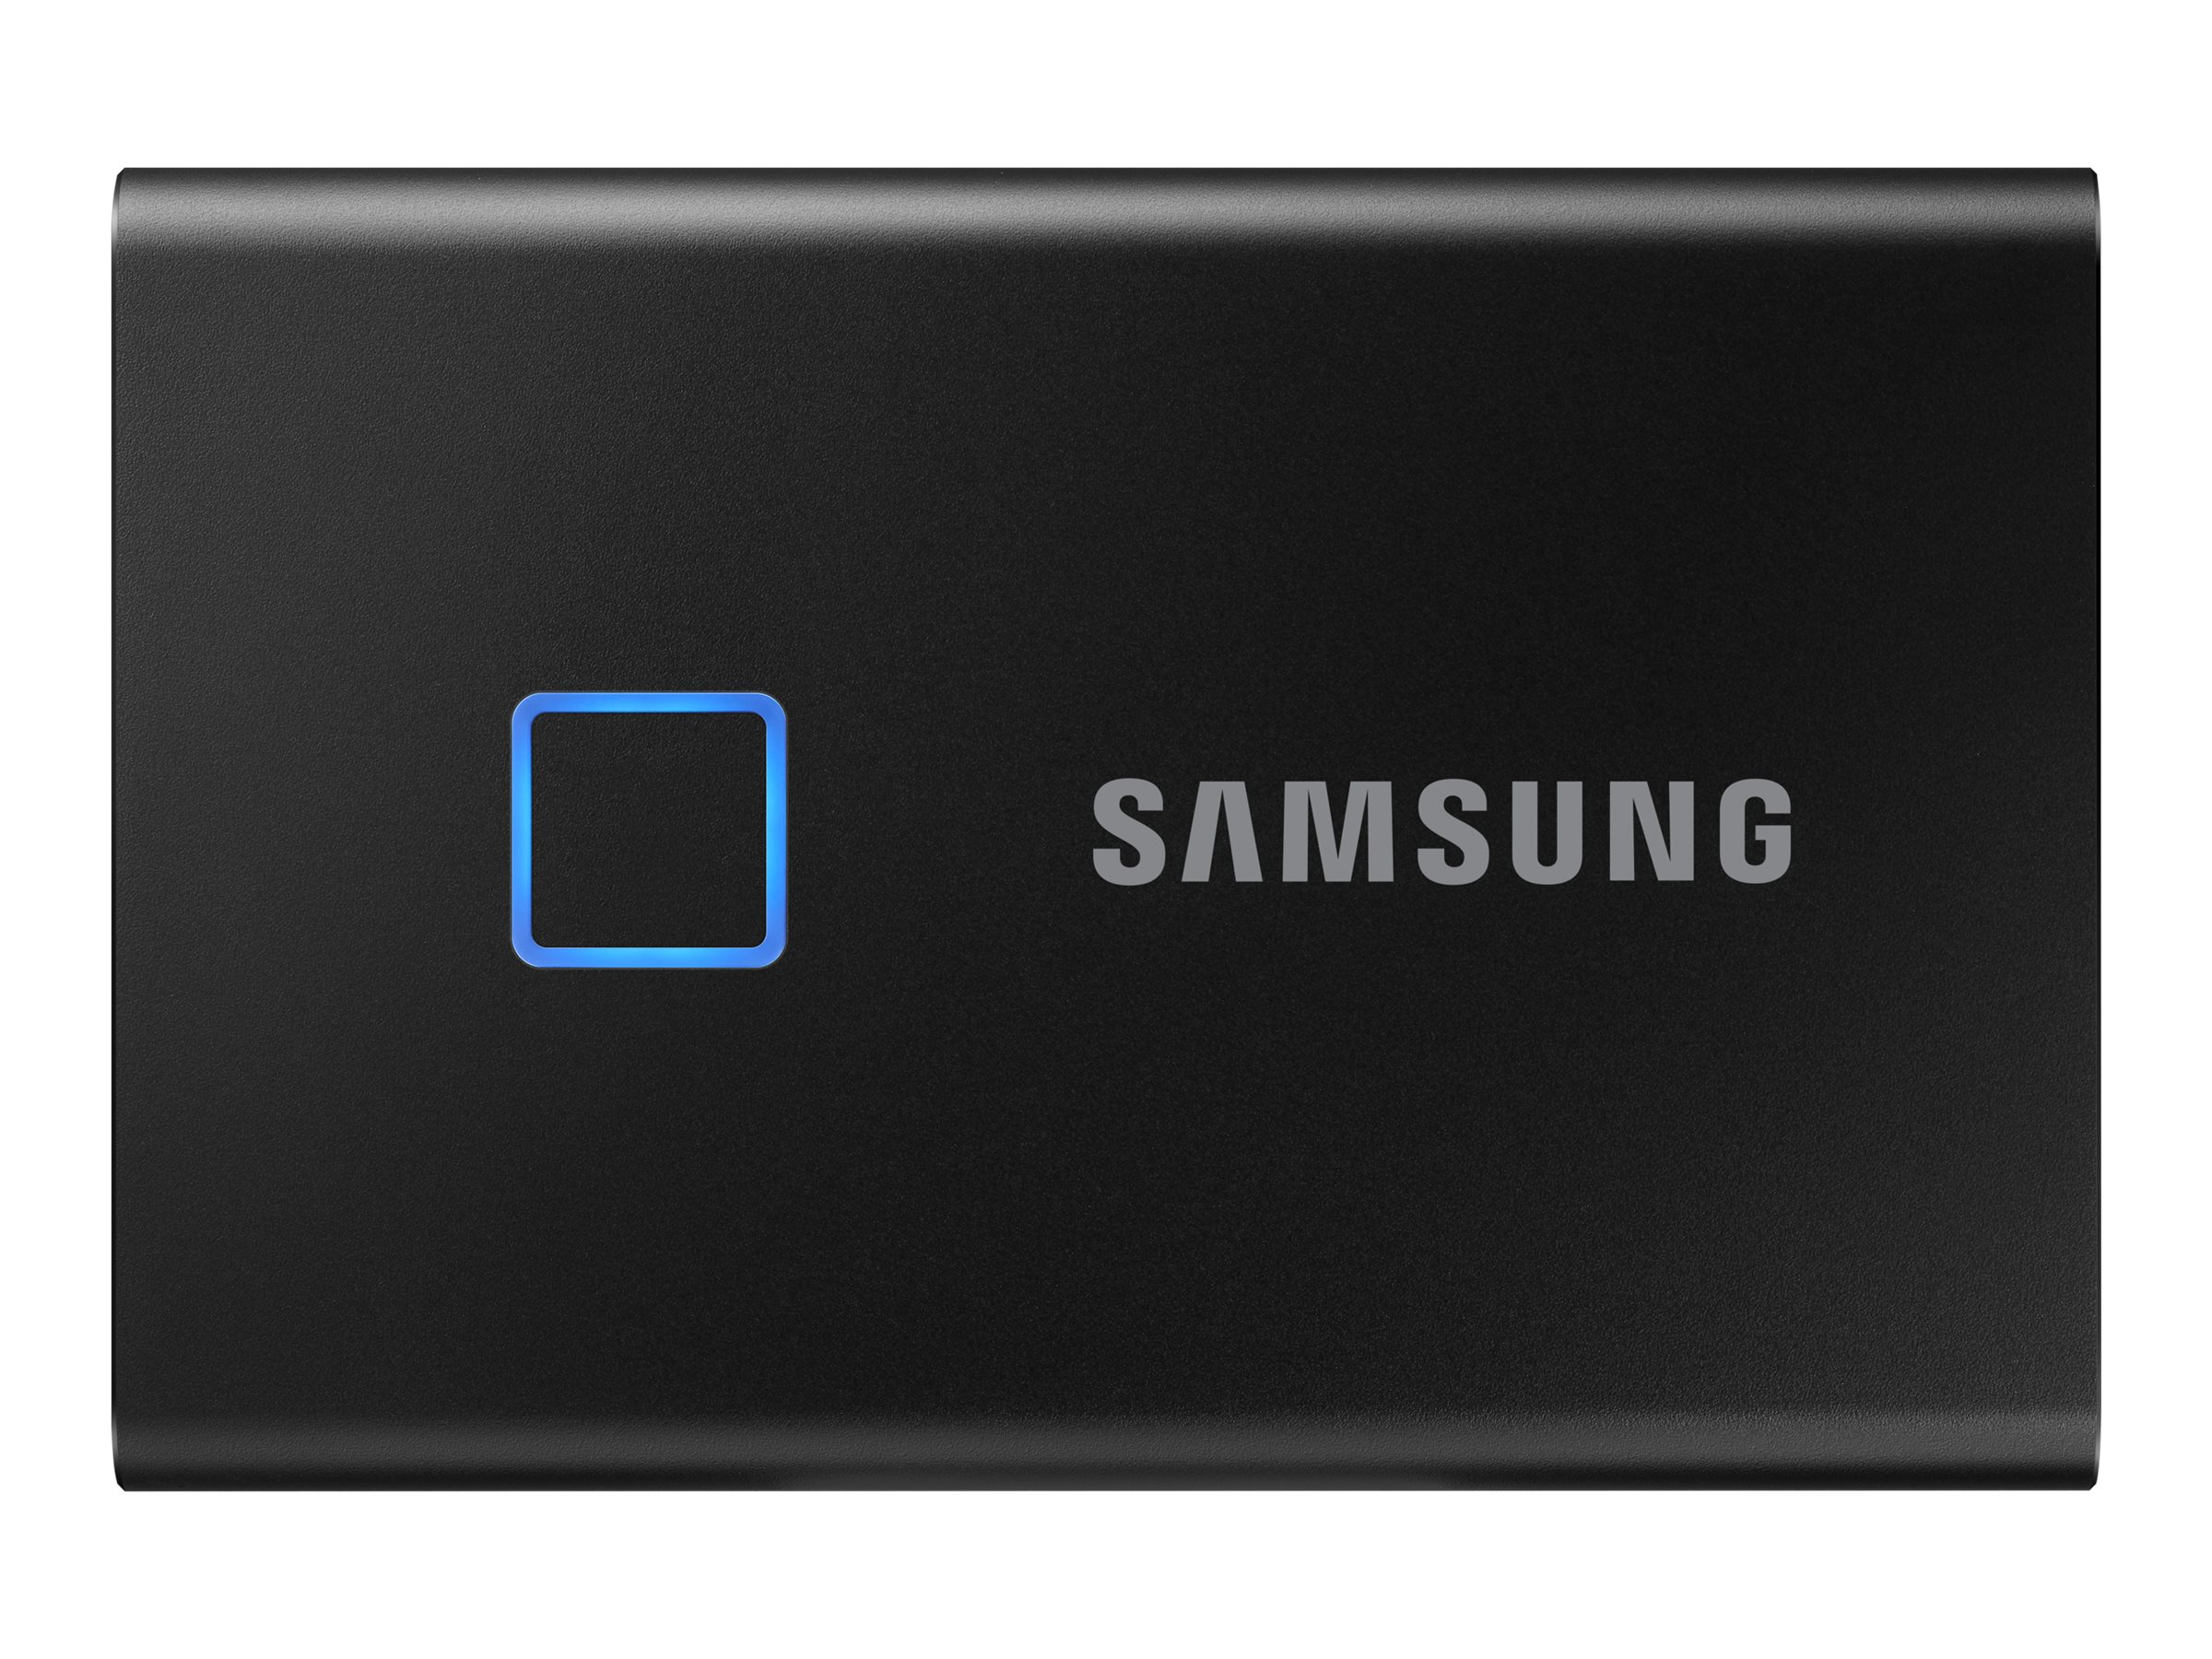 Samsung Portable SSD T7 Touch MU-PC500K - solid state drive - 500 GB - USB 3.2 Gen 2